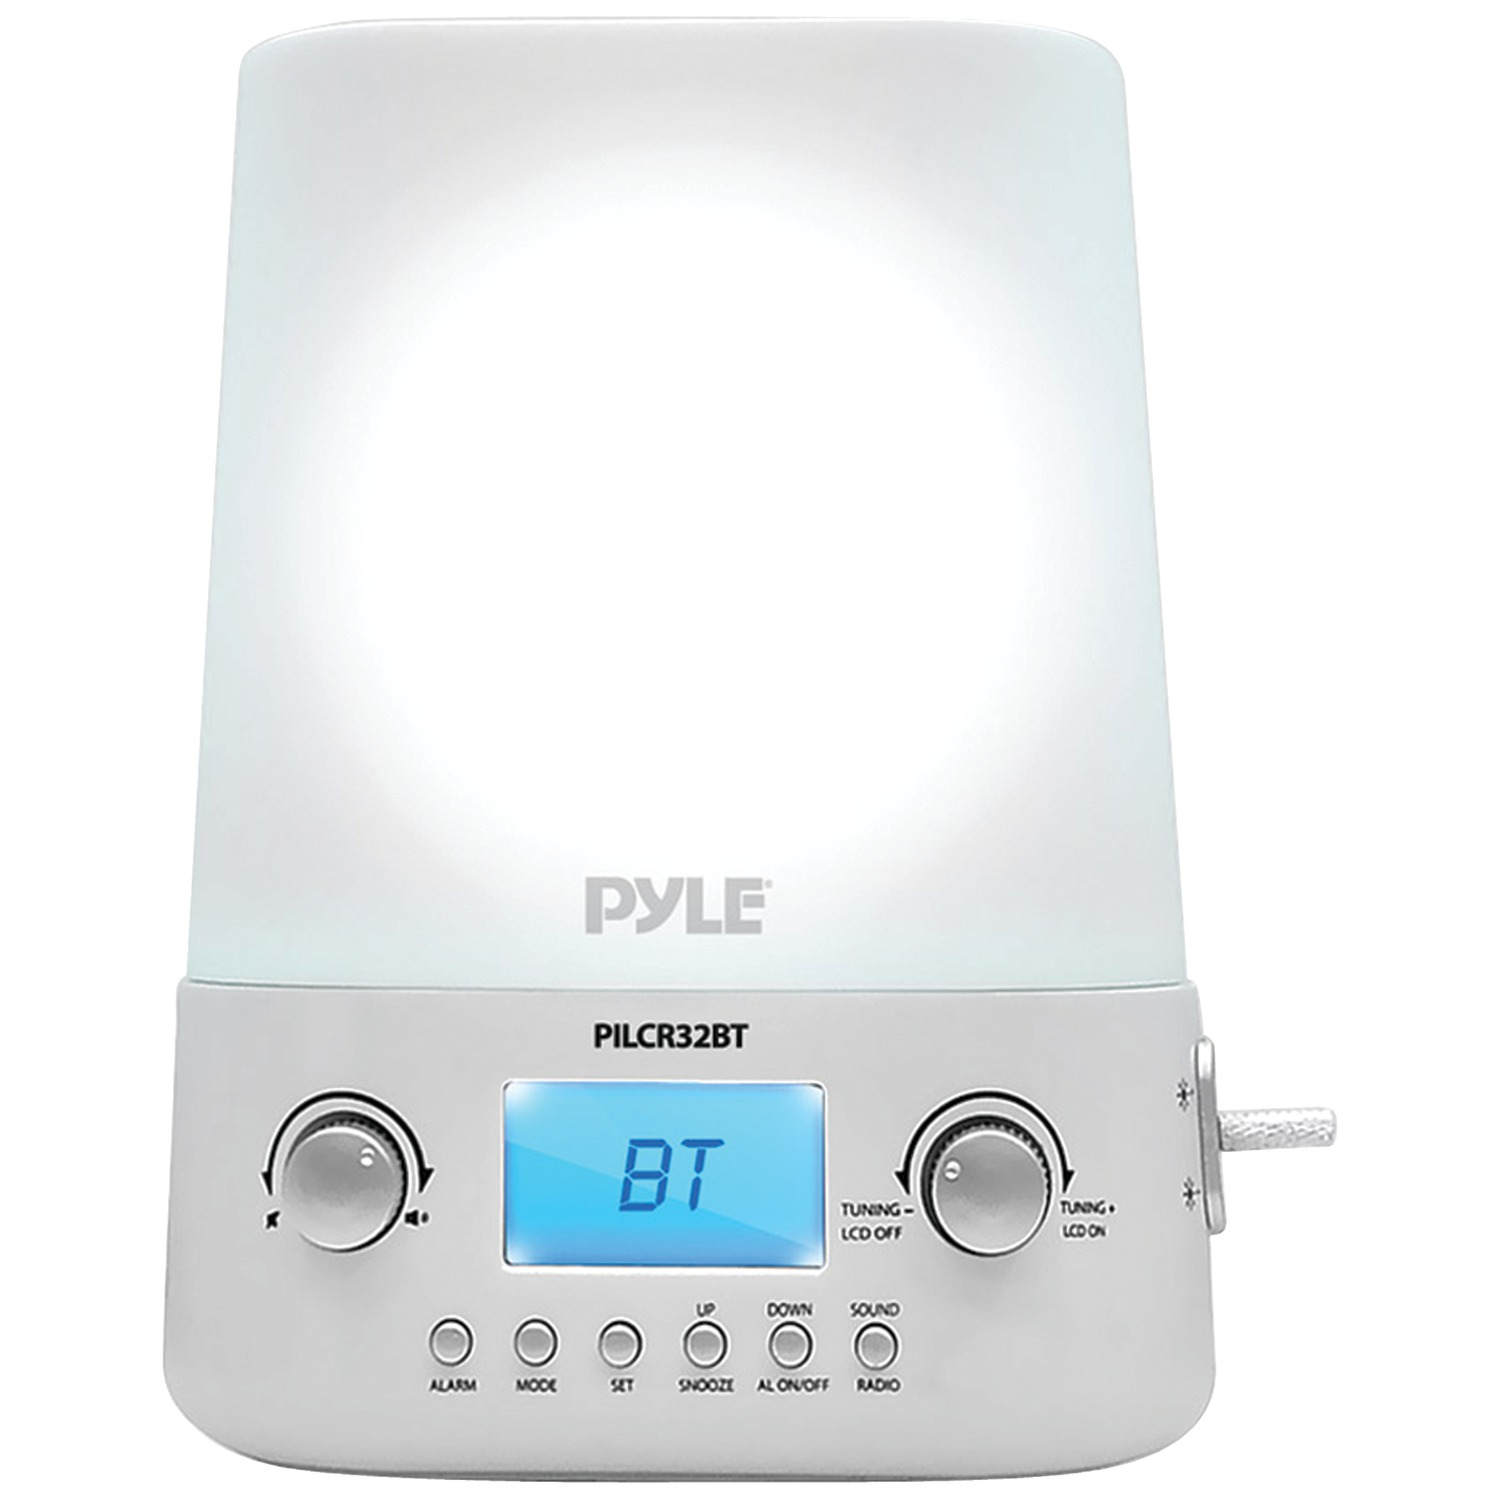 Pyle Pilcr32bt Bluetooth R Sunrise Sunset